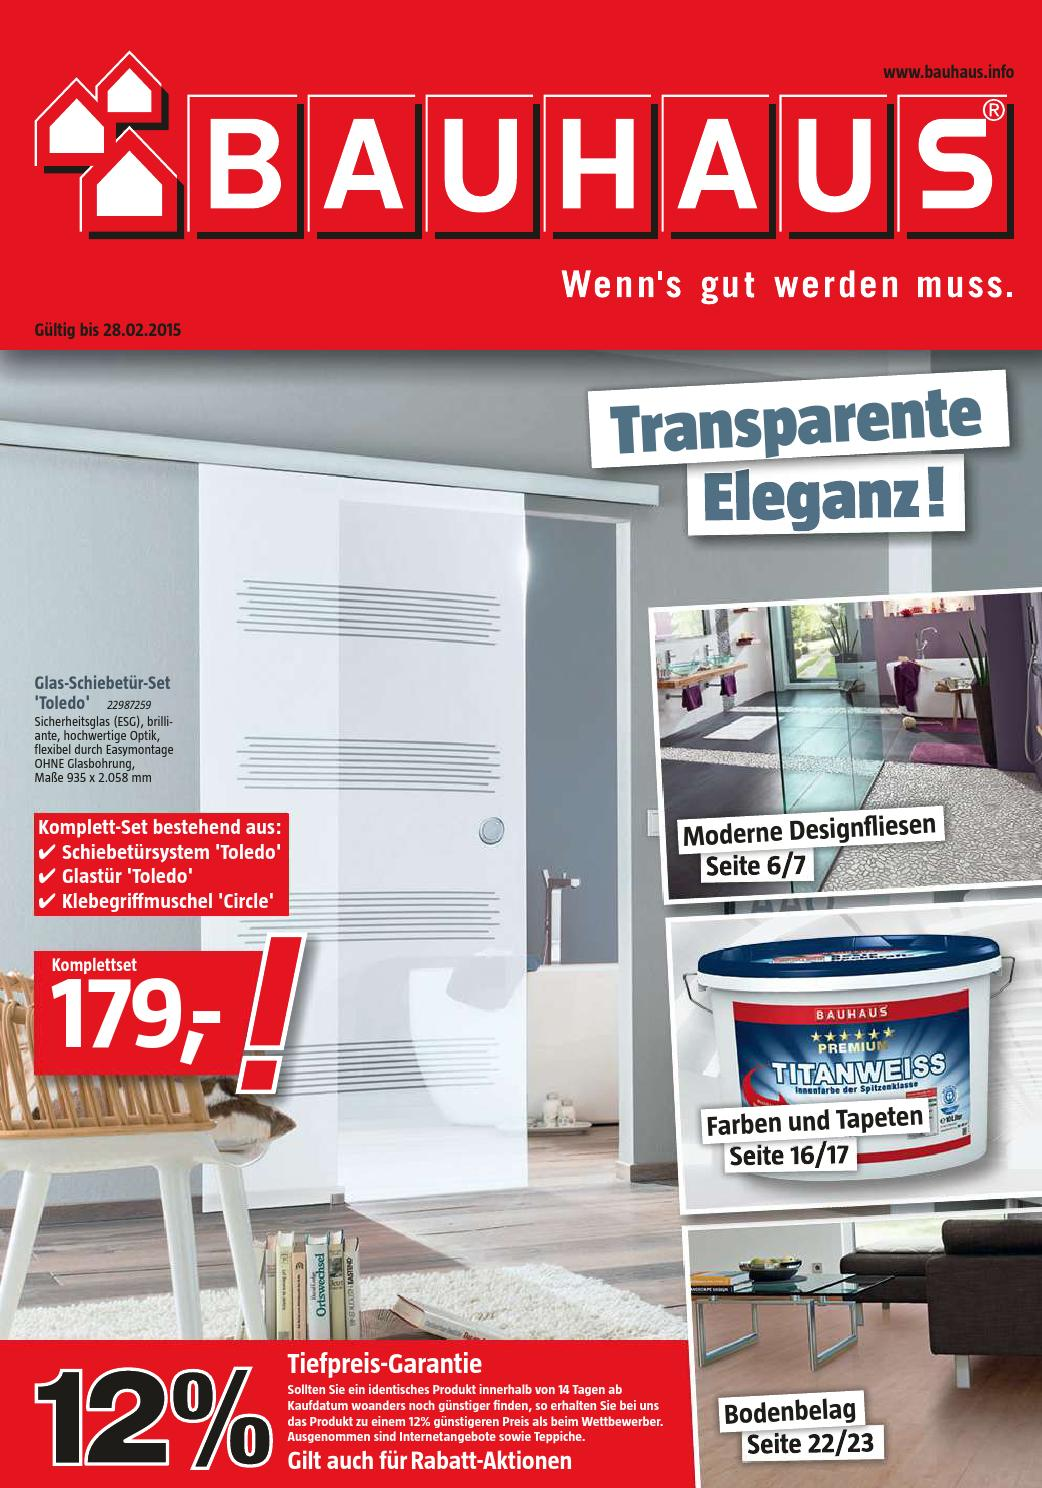 Bauhaus Fliesen Blau Bad Angebote 2 28februar2015 By Promoprospektede Issuu